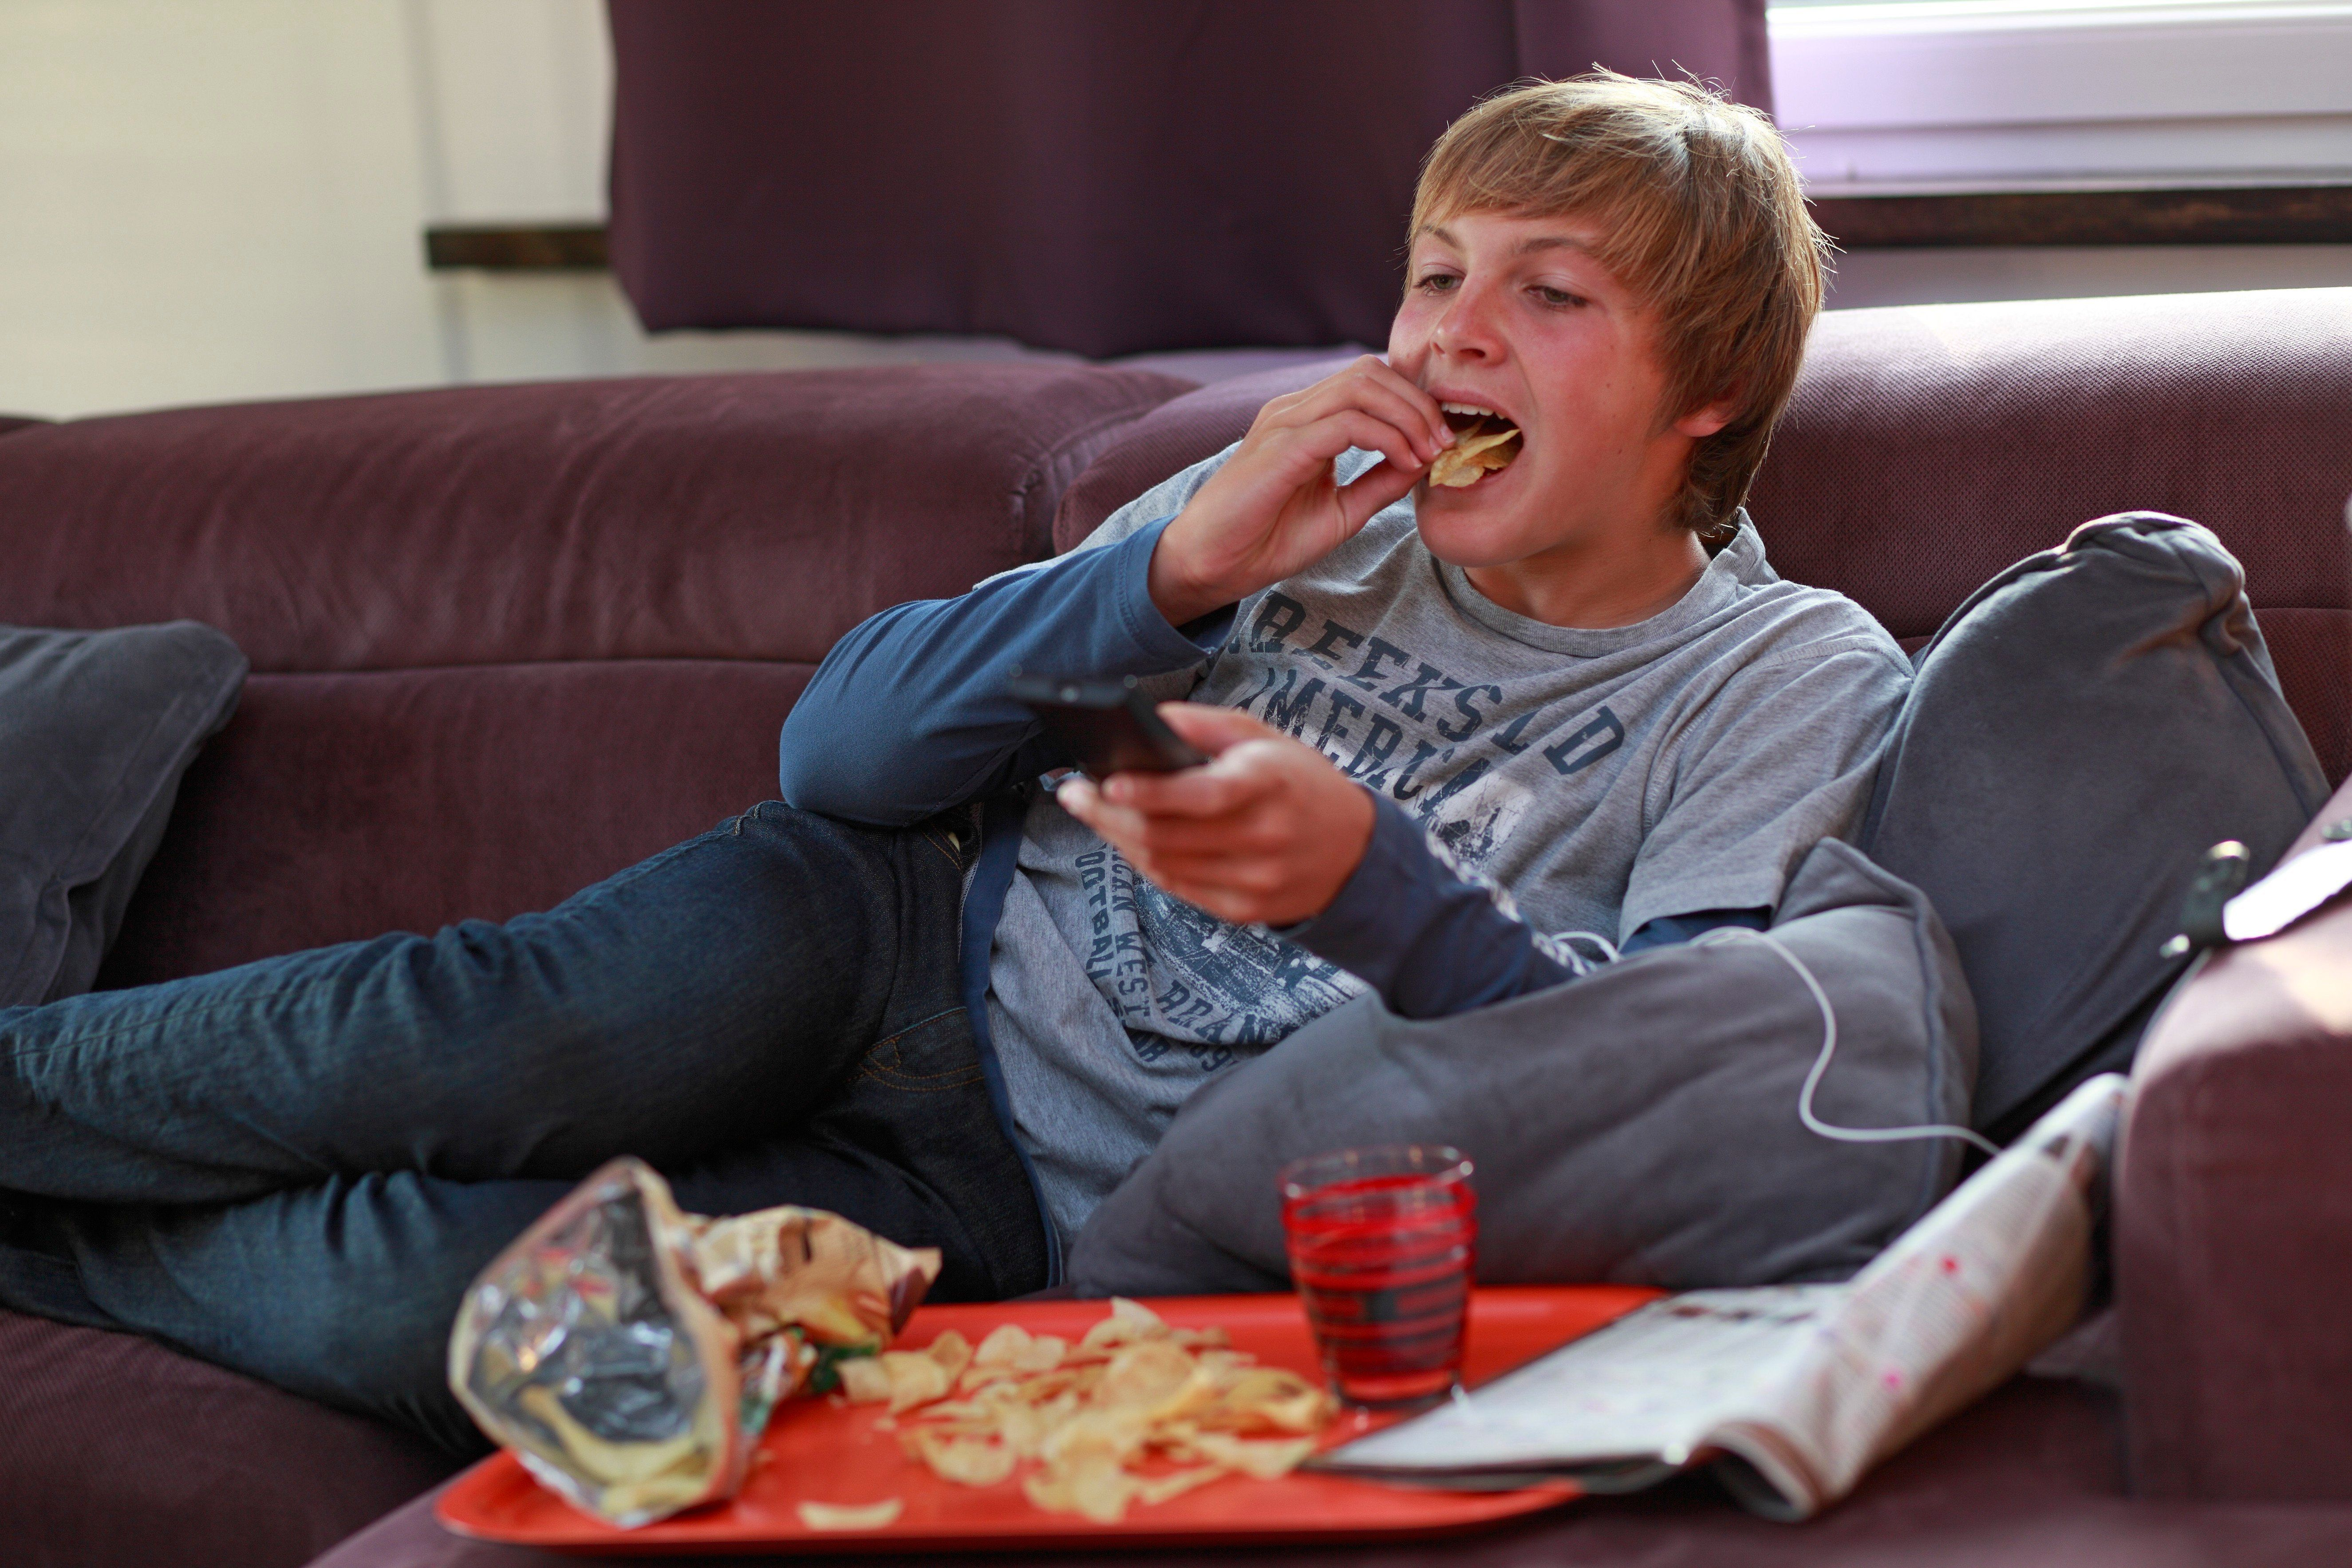 Teens Are Likely To Eat More Junk Food After Watching TV